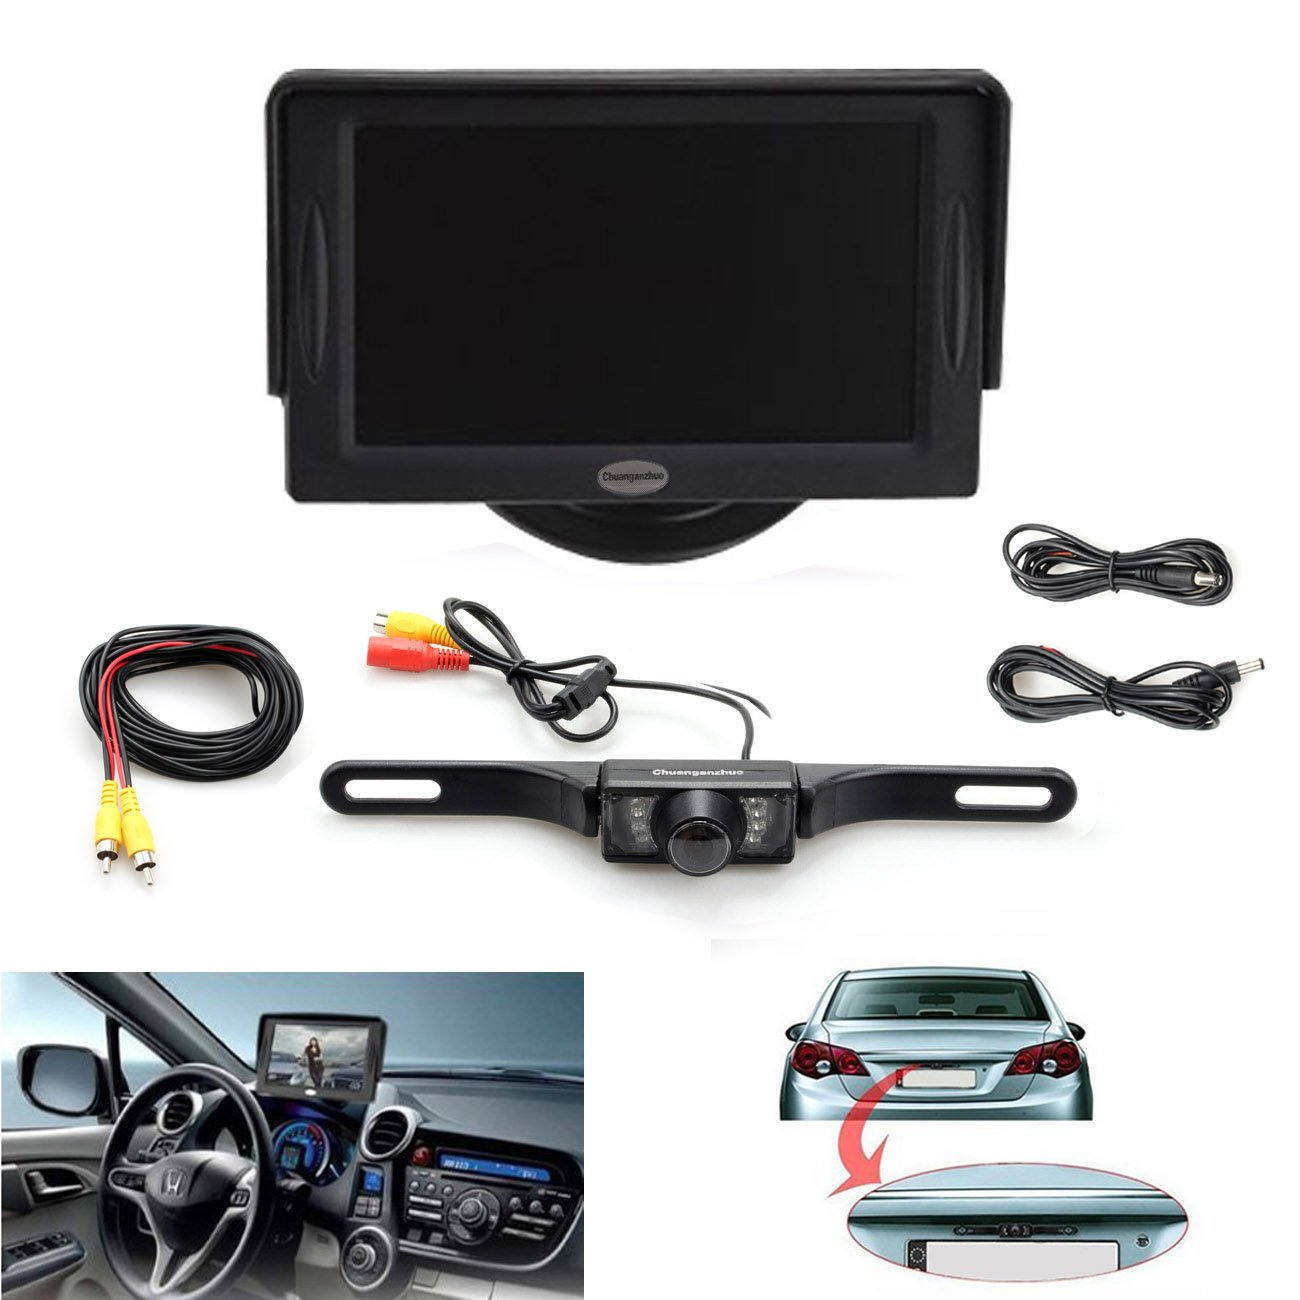 Backup Camera and Monitor Kit For Car,Universal Waterproof Rear-view License Plate Car Rear Backup Parking Camera + 4.3 TFT LCD Rear View Monitor Screen накладки на верхние воздуховоды для ford explorer 2010 2015